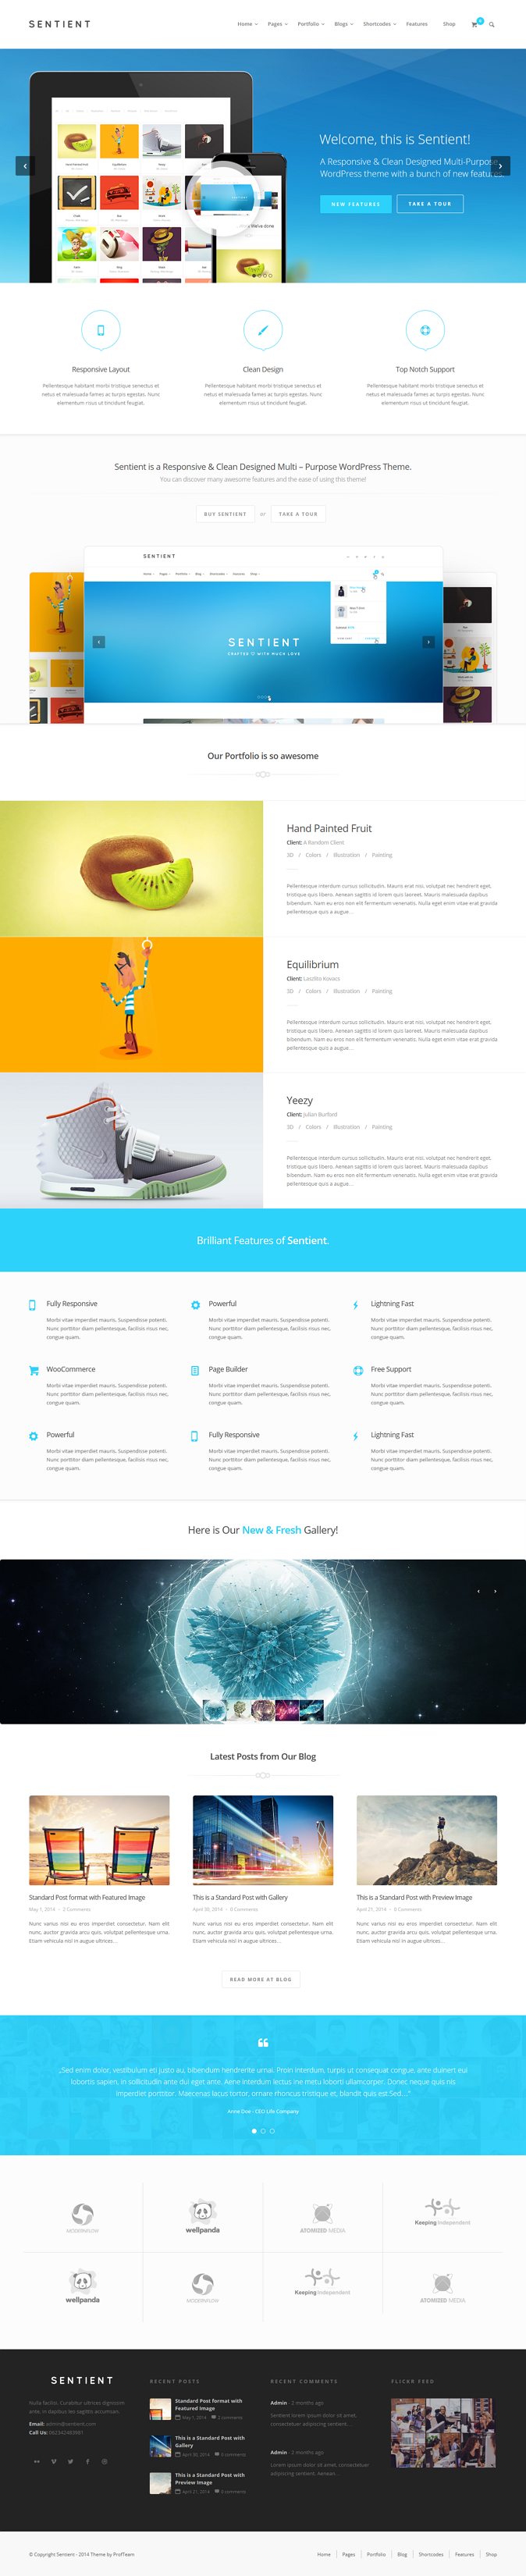 Sentient is a Modern & Clean Designed Multipurpose WordPress Theme that fits for every purpose.